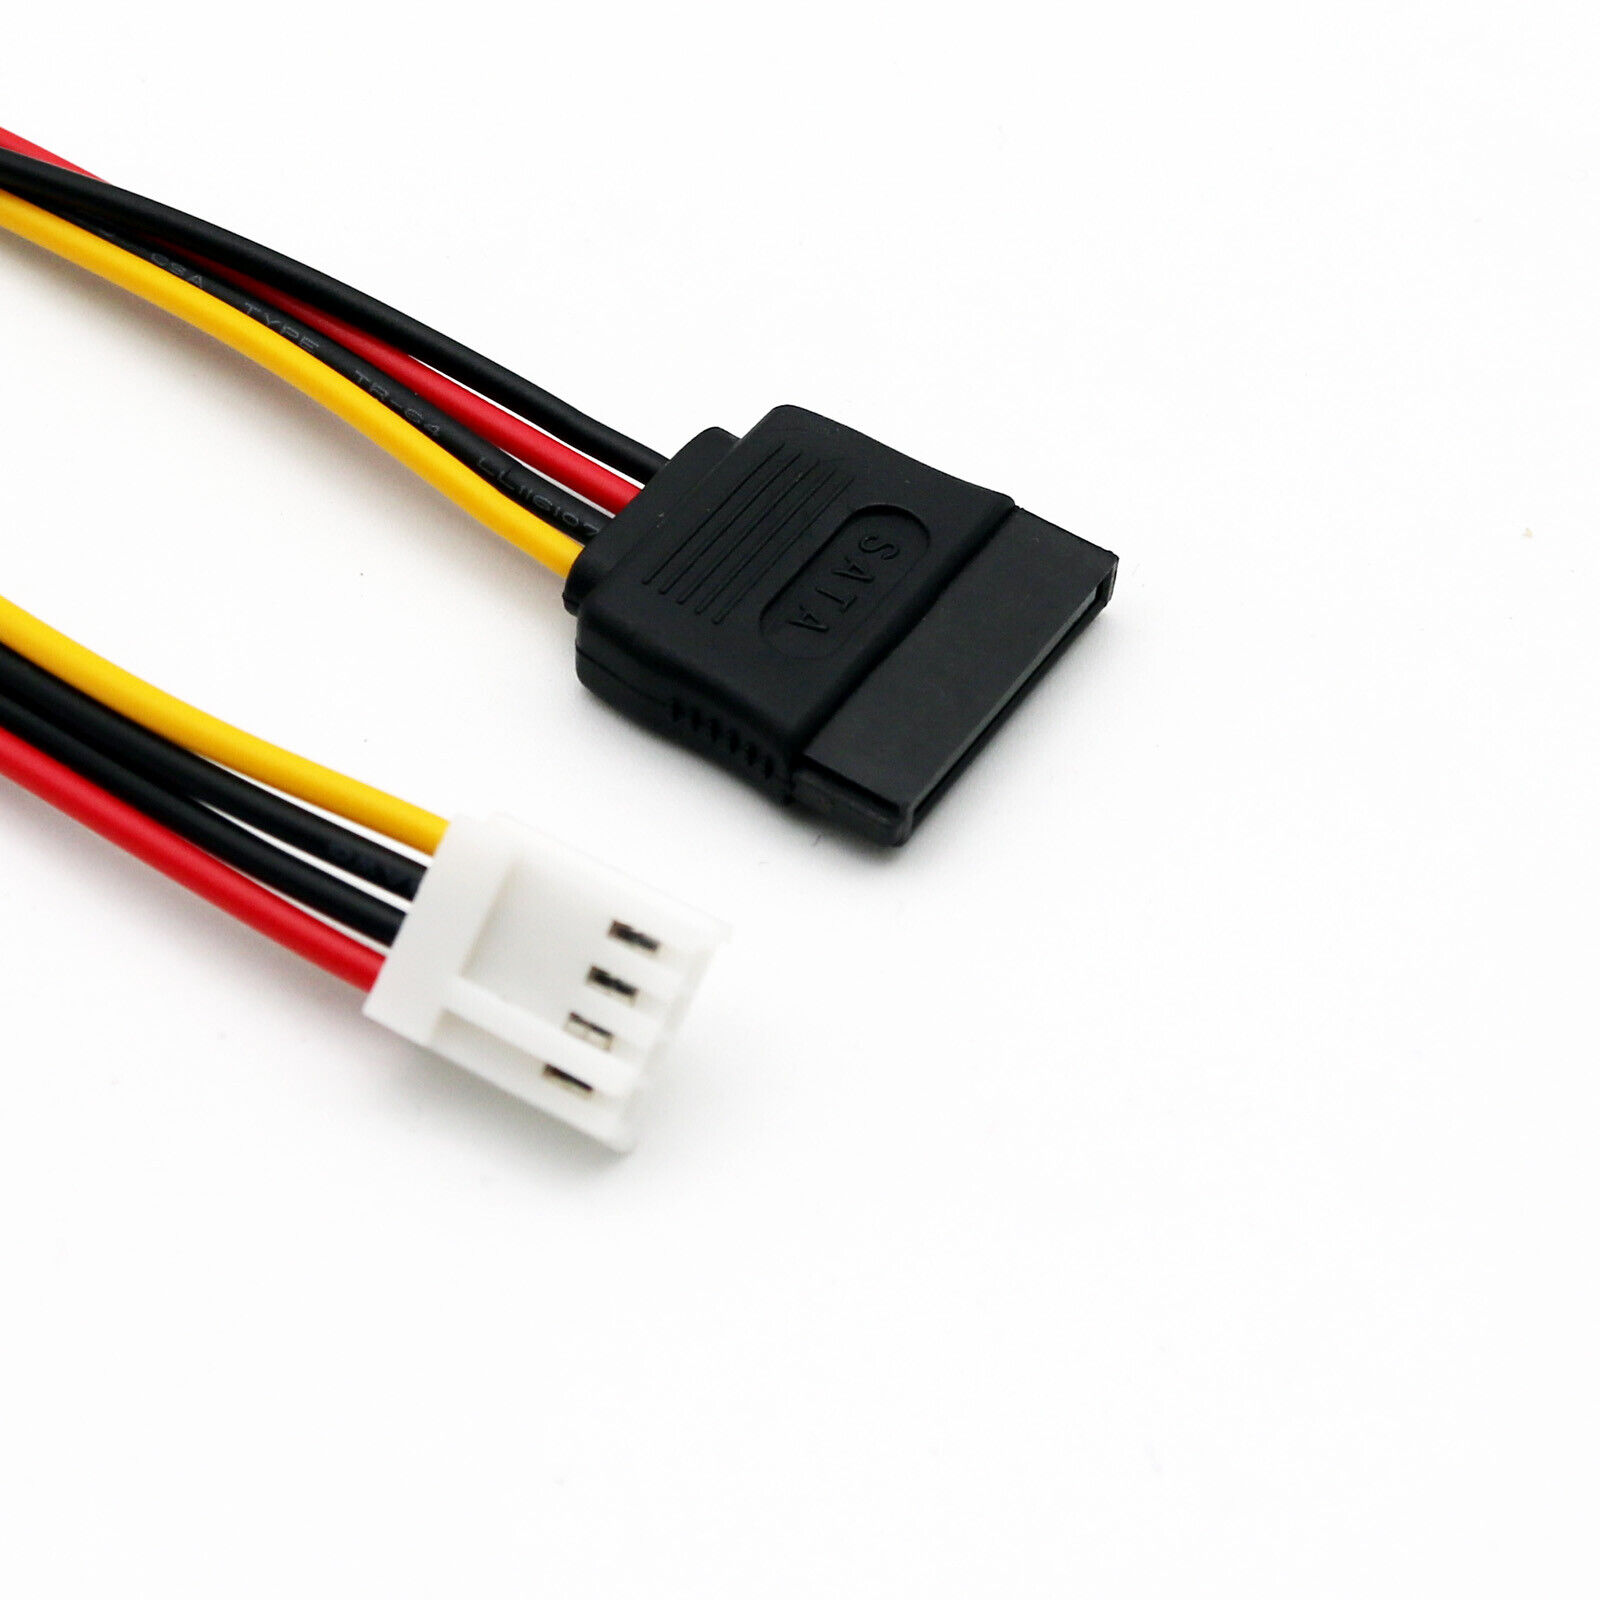 1x SATA 15 Pin Female to 4 Pin Floppy FDD Female Jack Power Connector Cable 20cm